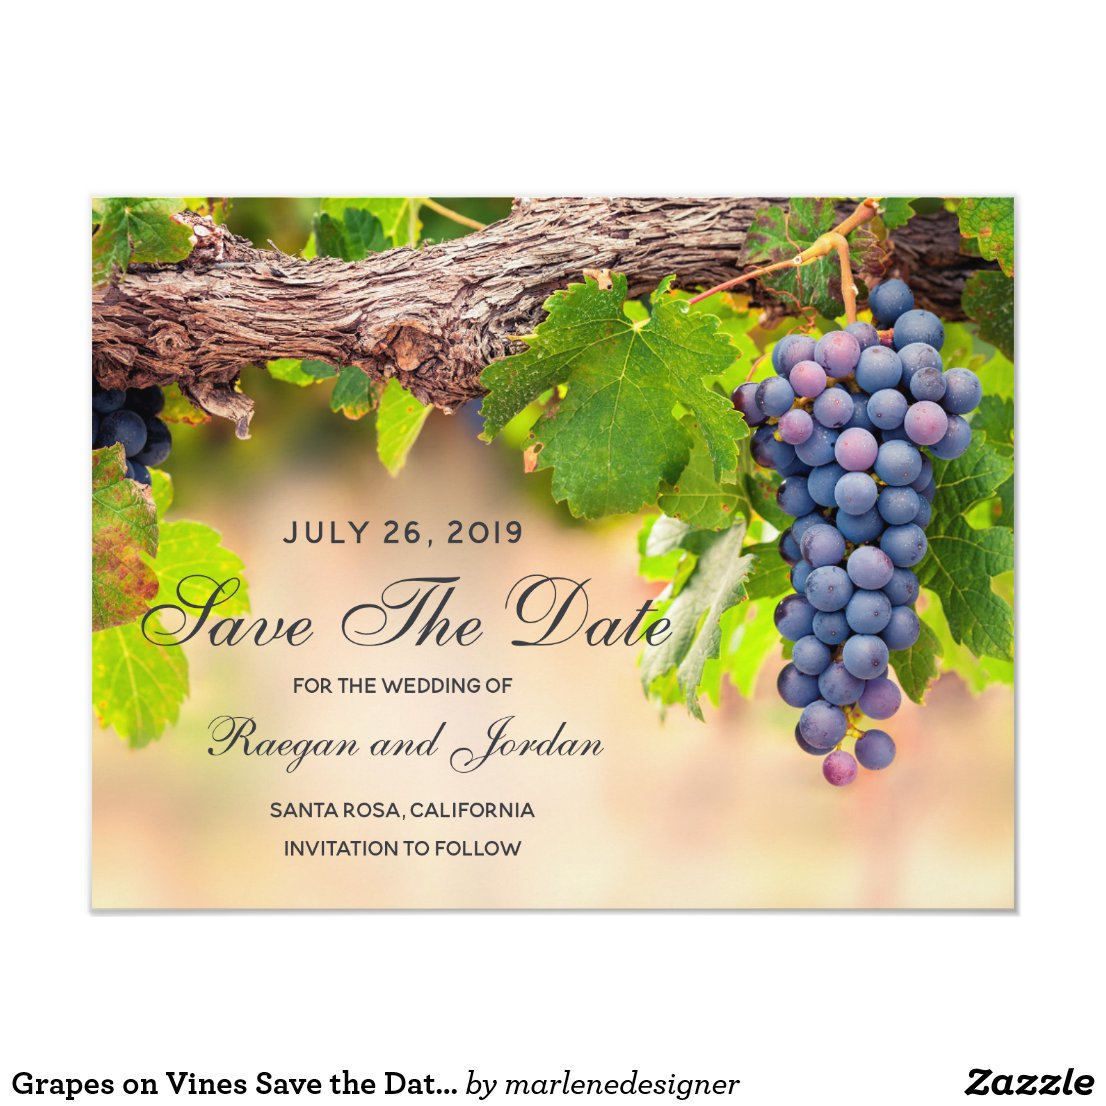 Grapes on Vines Save the Date Card